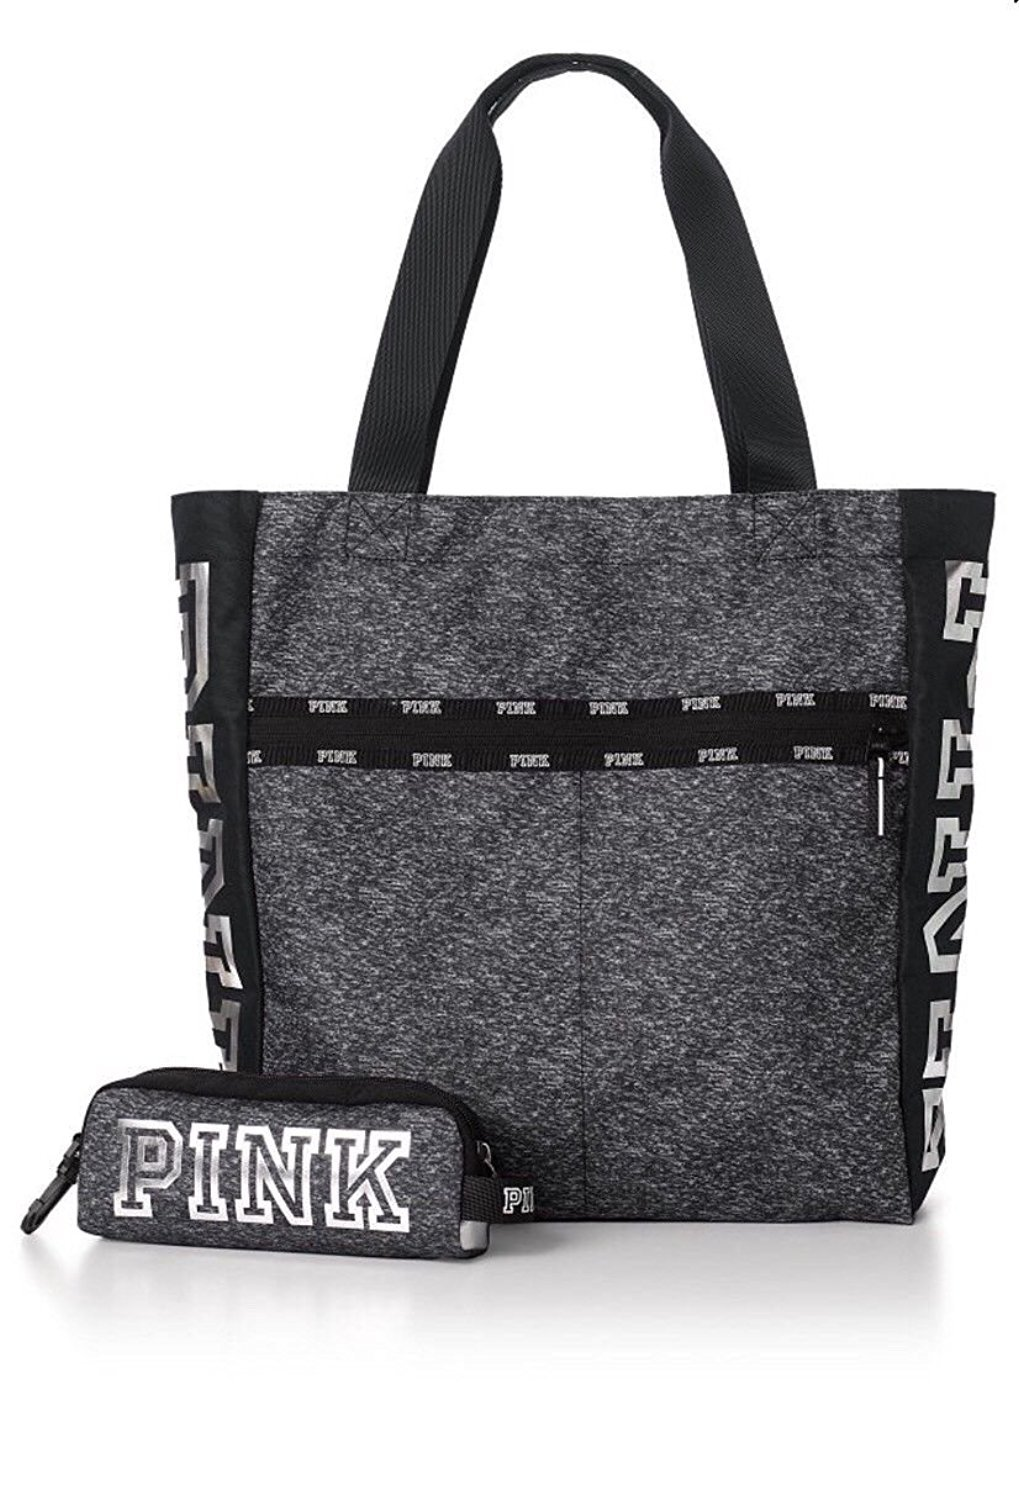 Victoria's Secret PINK Clay Grey Marl & Black Zip Tote Bag and Matching Tech Pouch with Silver Logo